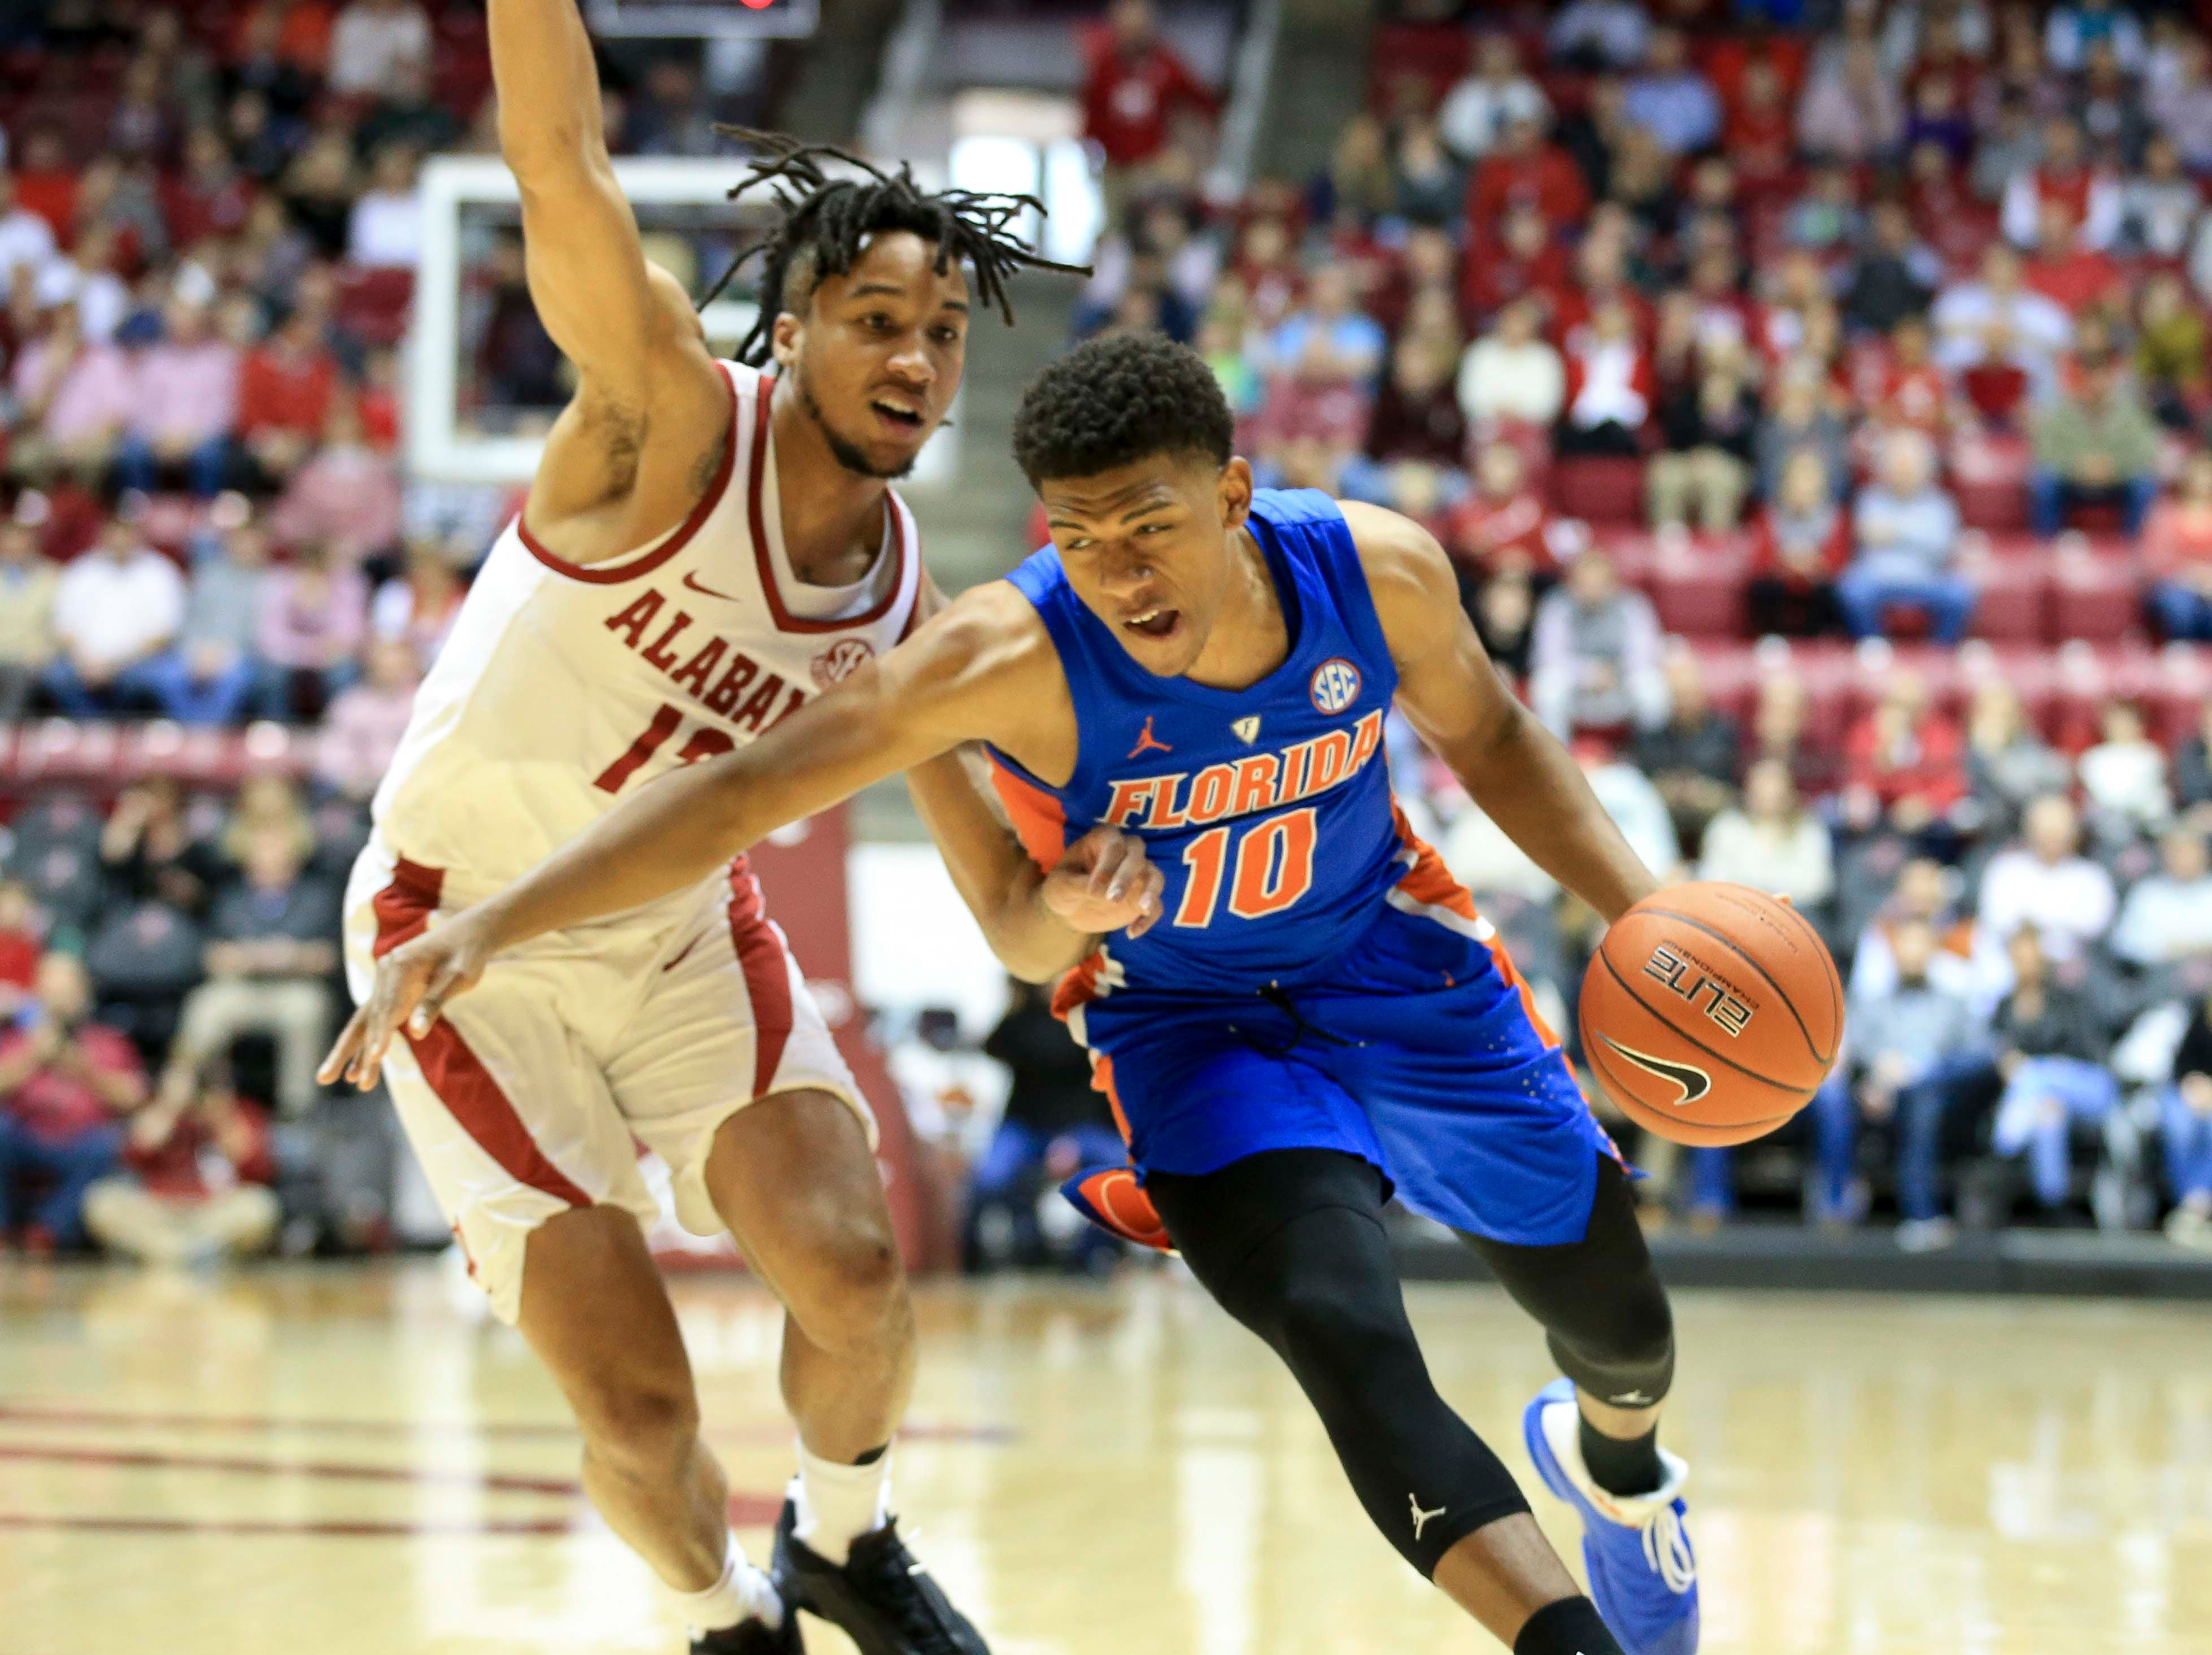 Feb 16, 2019; Tuscaloosa, AL, USA; Florida Gators guard Noah Locke (10) drives to the basket against Alabama Crimson Tide guard Dazon Ingram (12) during the first half at Coleman Coliseum. Mandatory Credit: Marvin Gentry-USA TODAY Sports